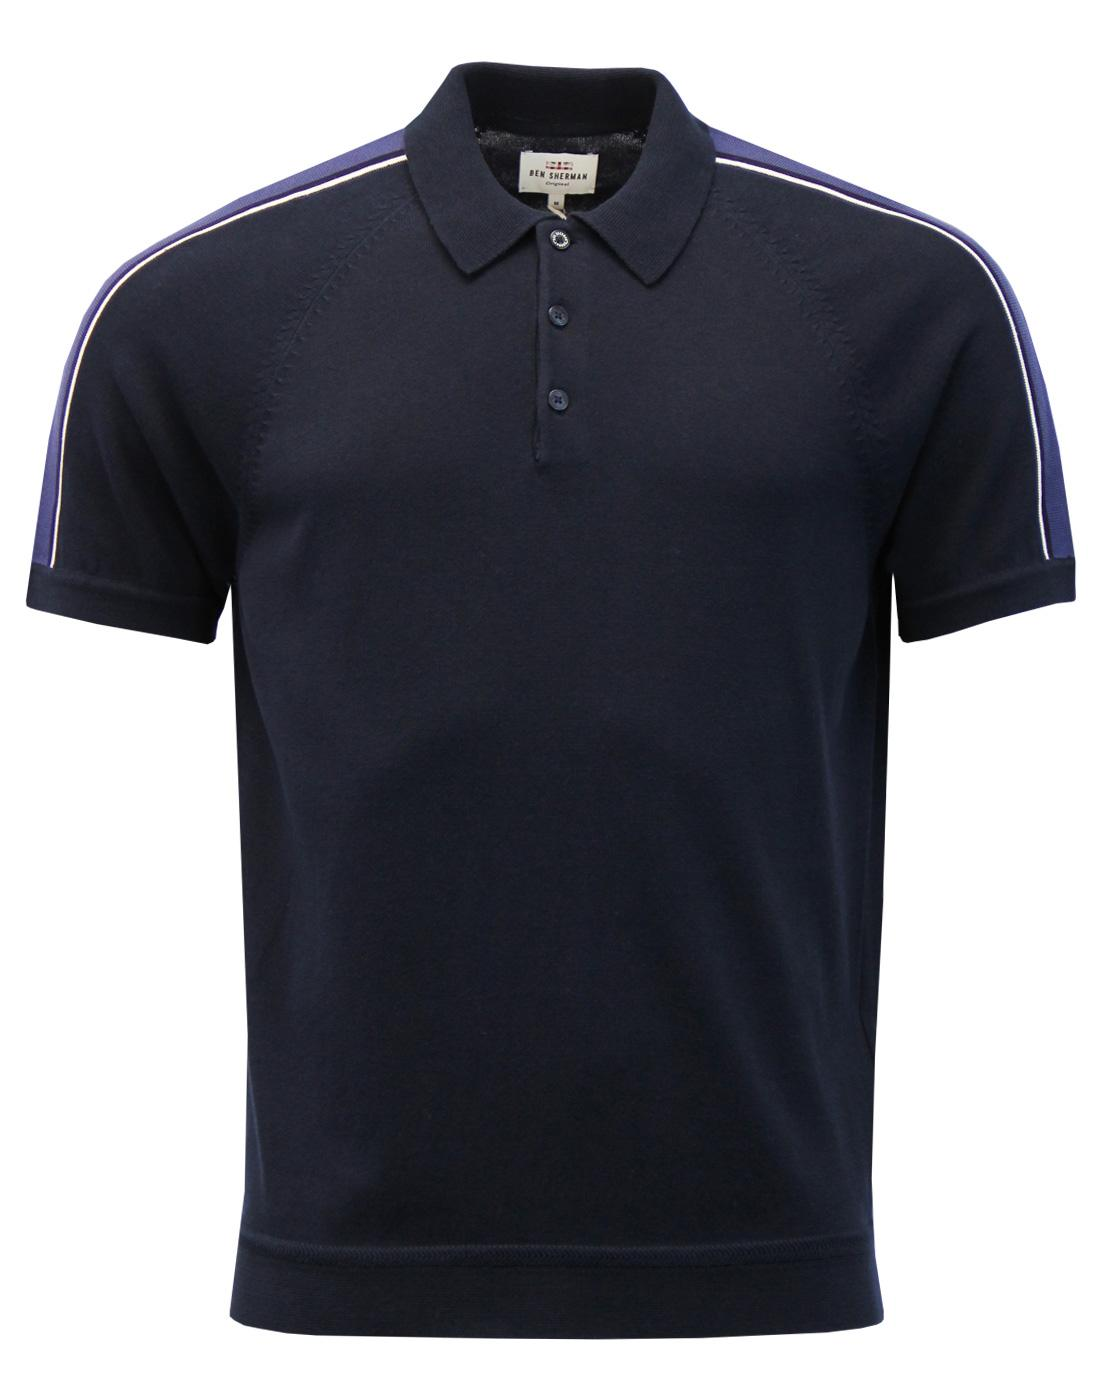 BEN SHERMAN Retro Mod Piped Overarm Knit Polo Top